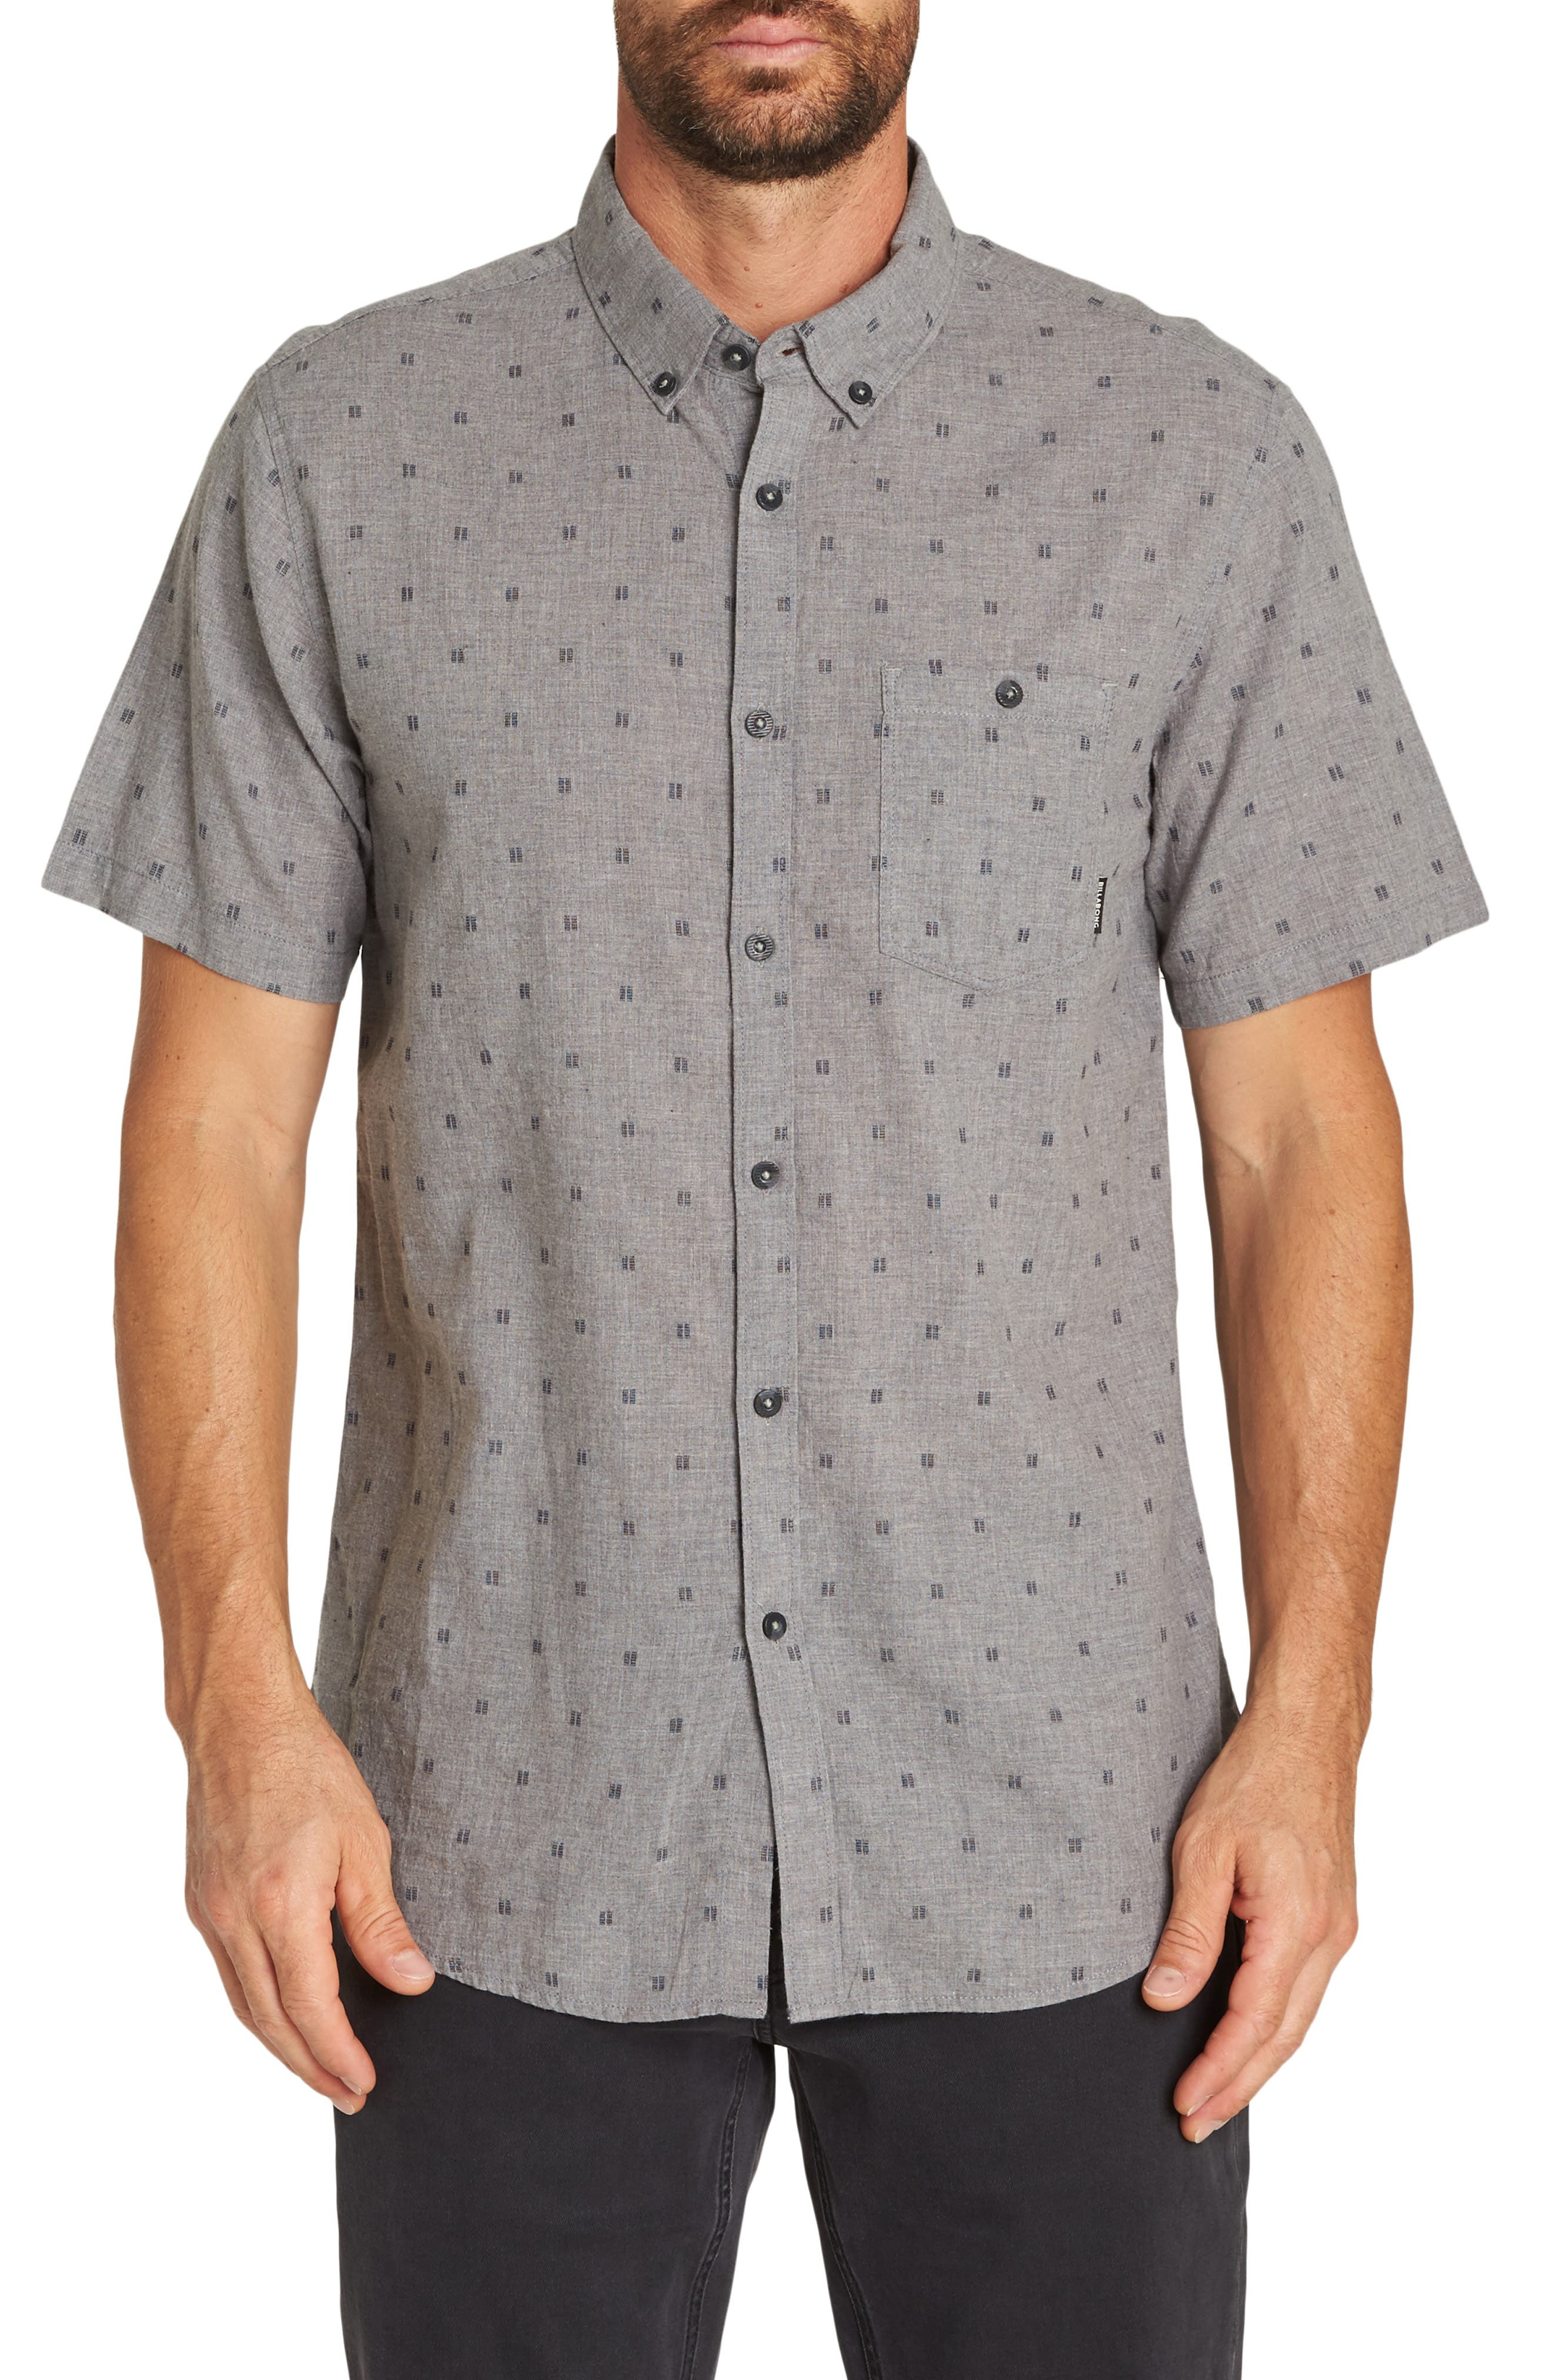 All Day Jacquard Shirt,                             Main thumbnail 1, color,                             PEWTER HEATHER